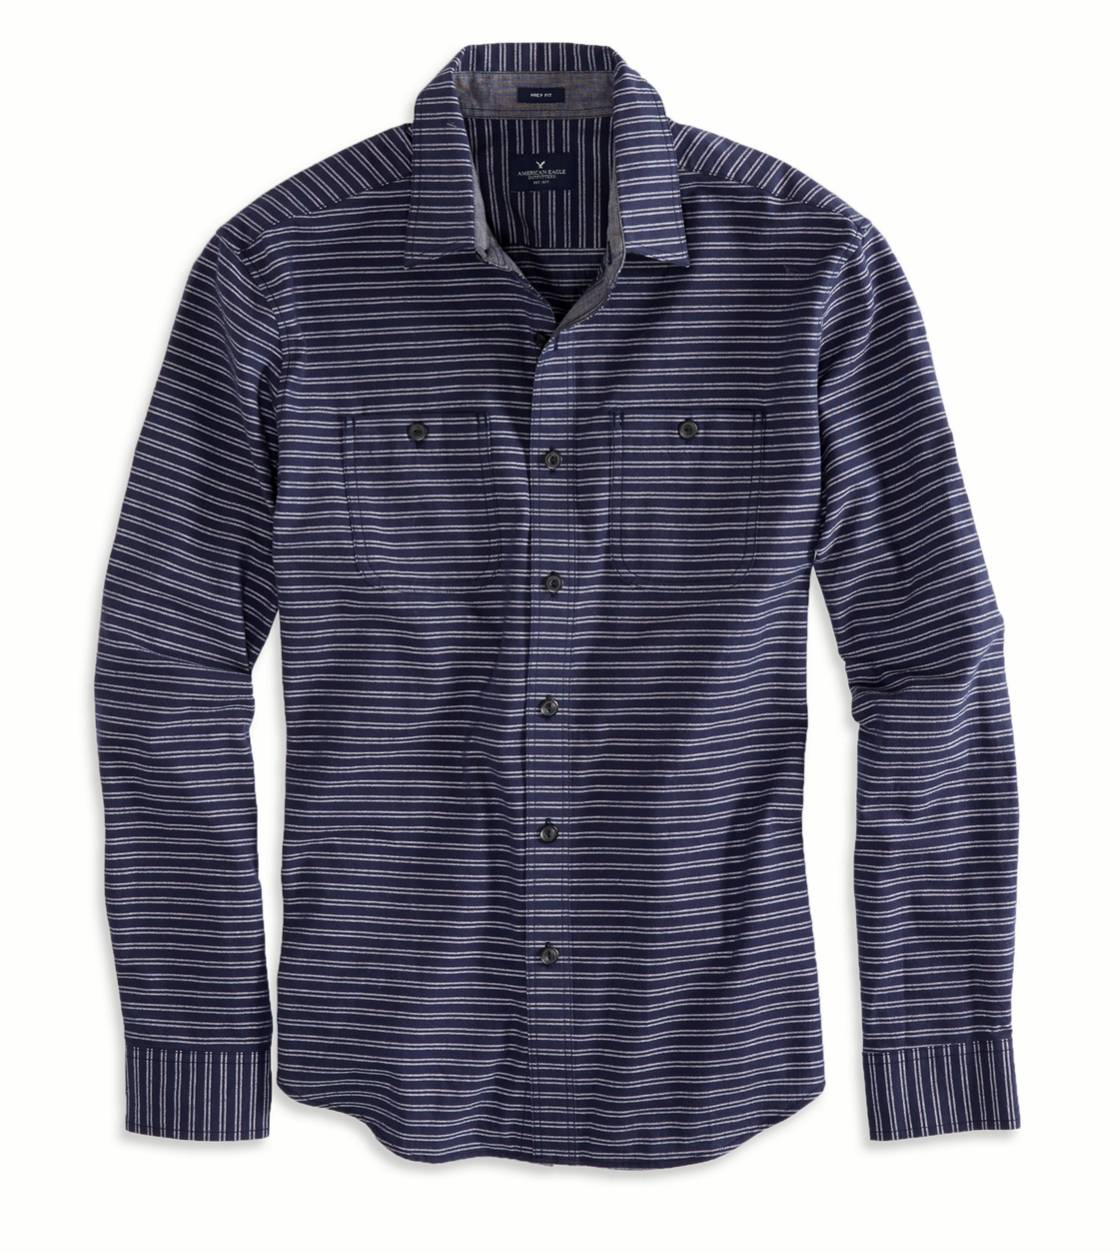 Navy AE Striped Workwear Shirt